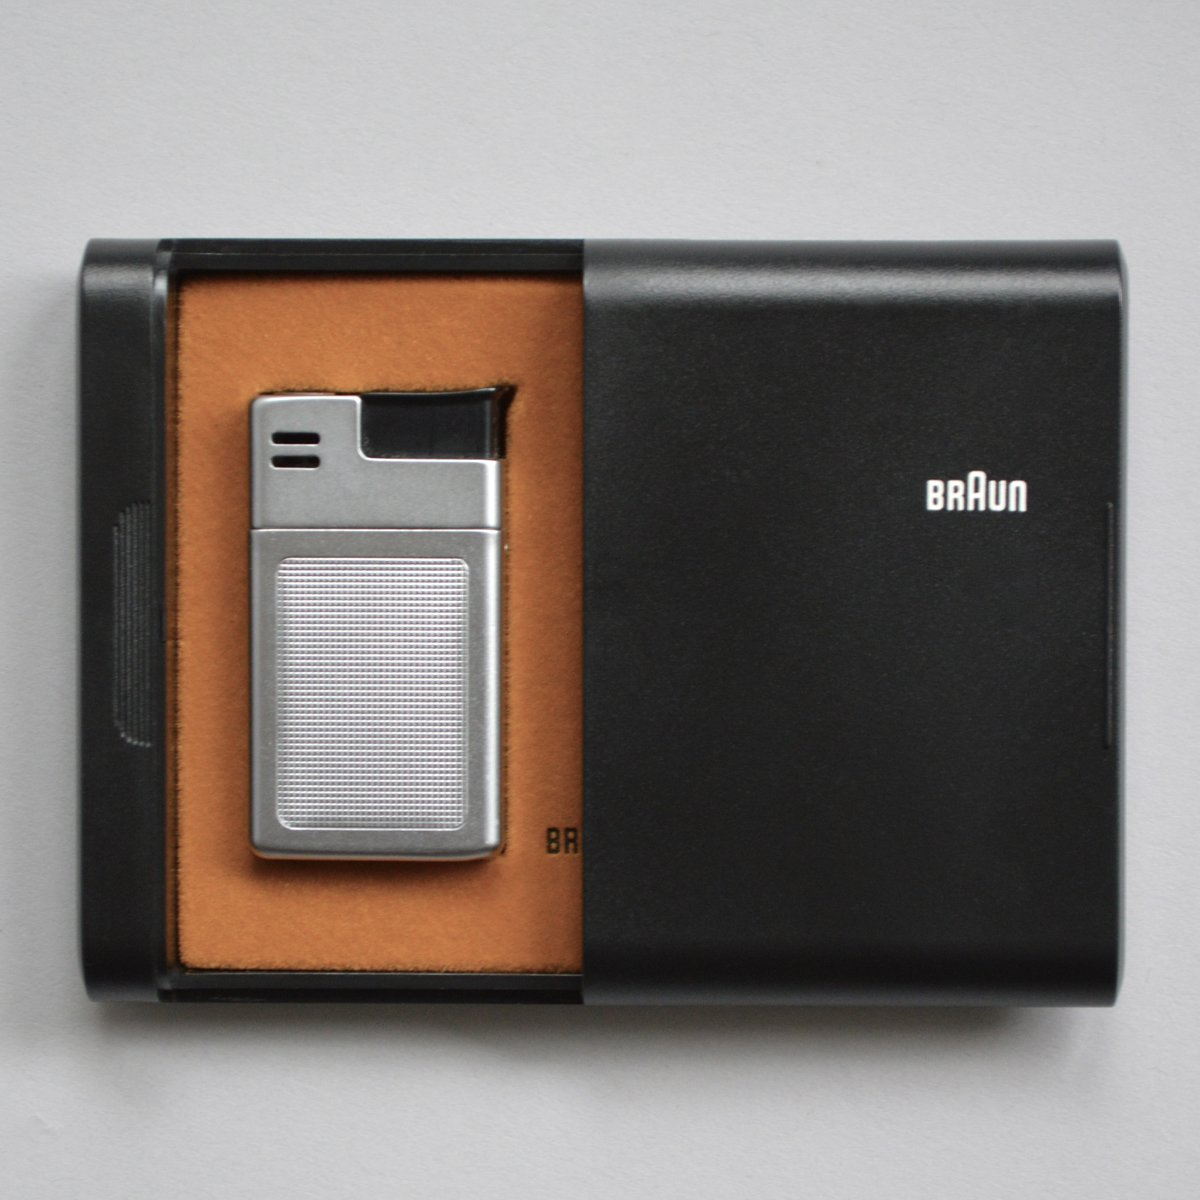 Braun Mach 2 lighter by Dieter Rams with Florian Seiffert (1971), with case.  Photo 2 of 8 in Shop the Vintage Braun Catalog from Your Web Browser